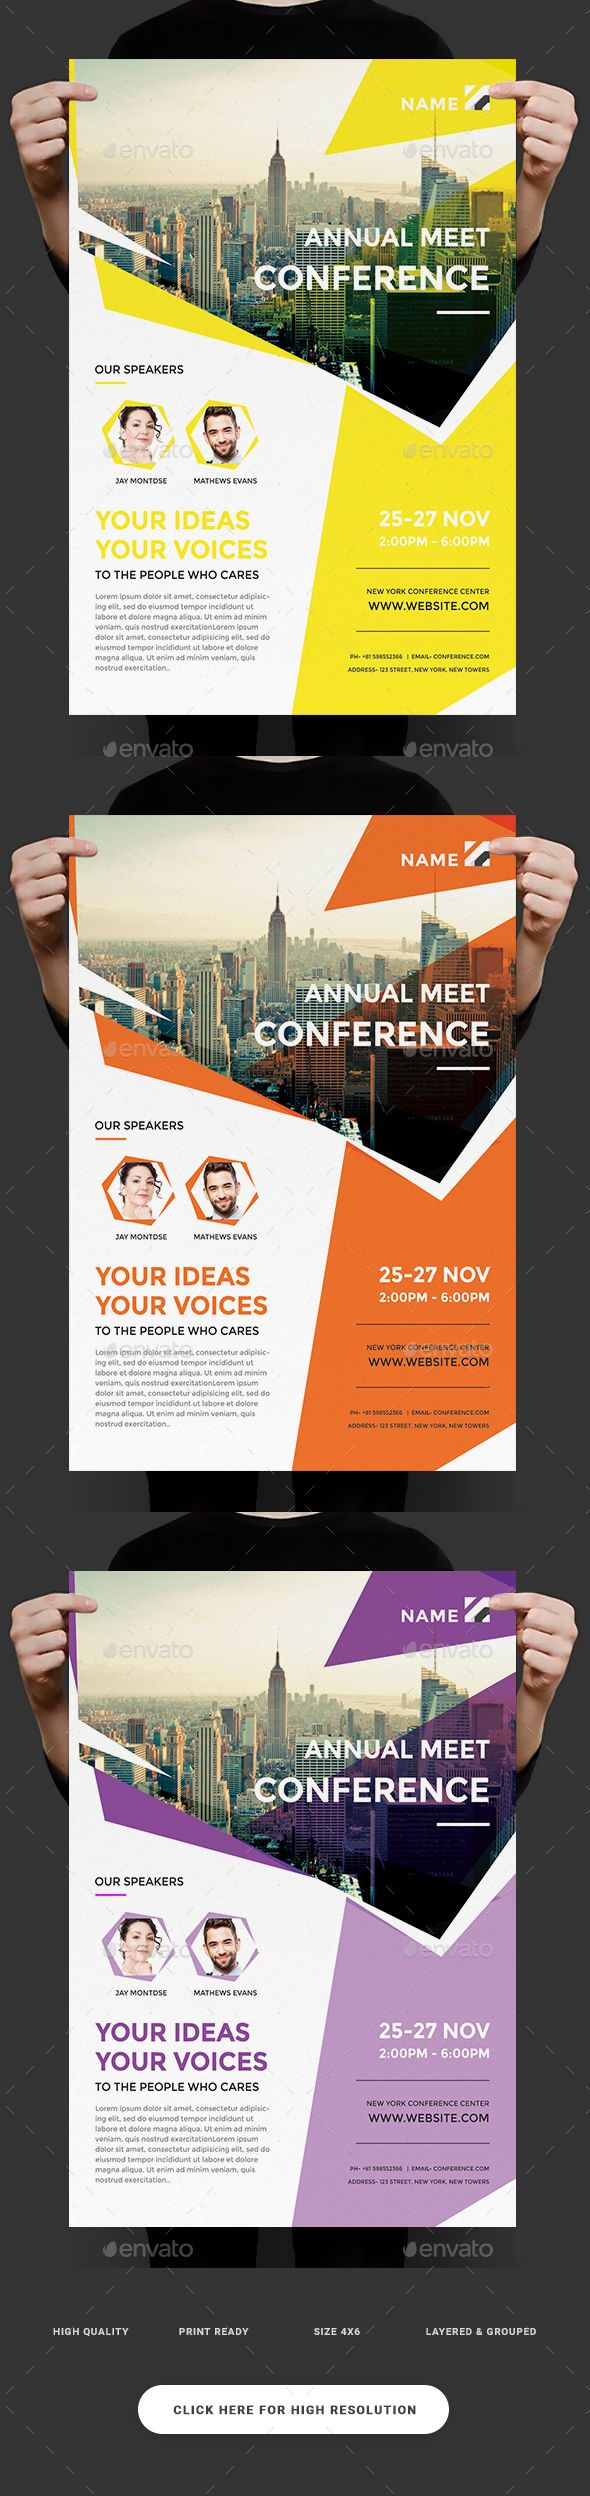 best ideas about flyers flyer design graphic event summit conference flyer